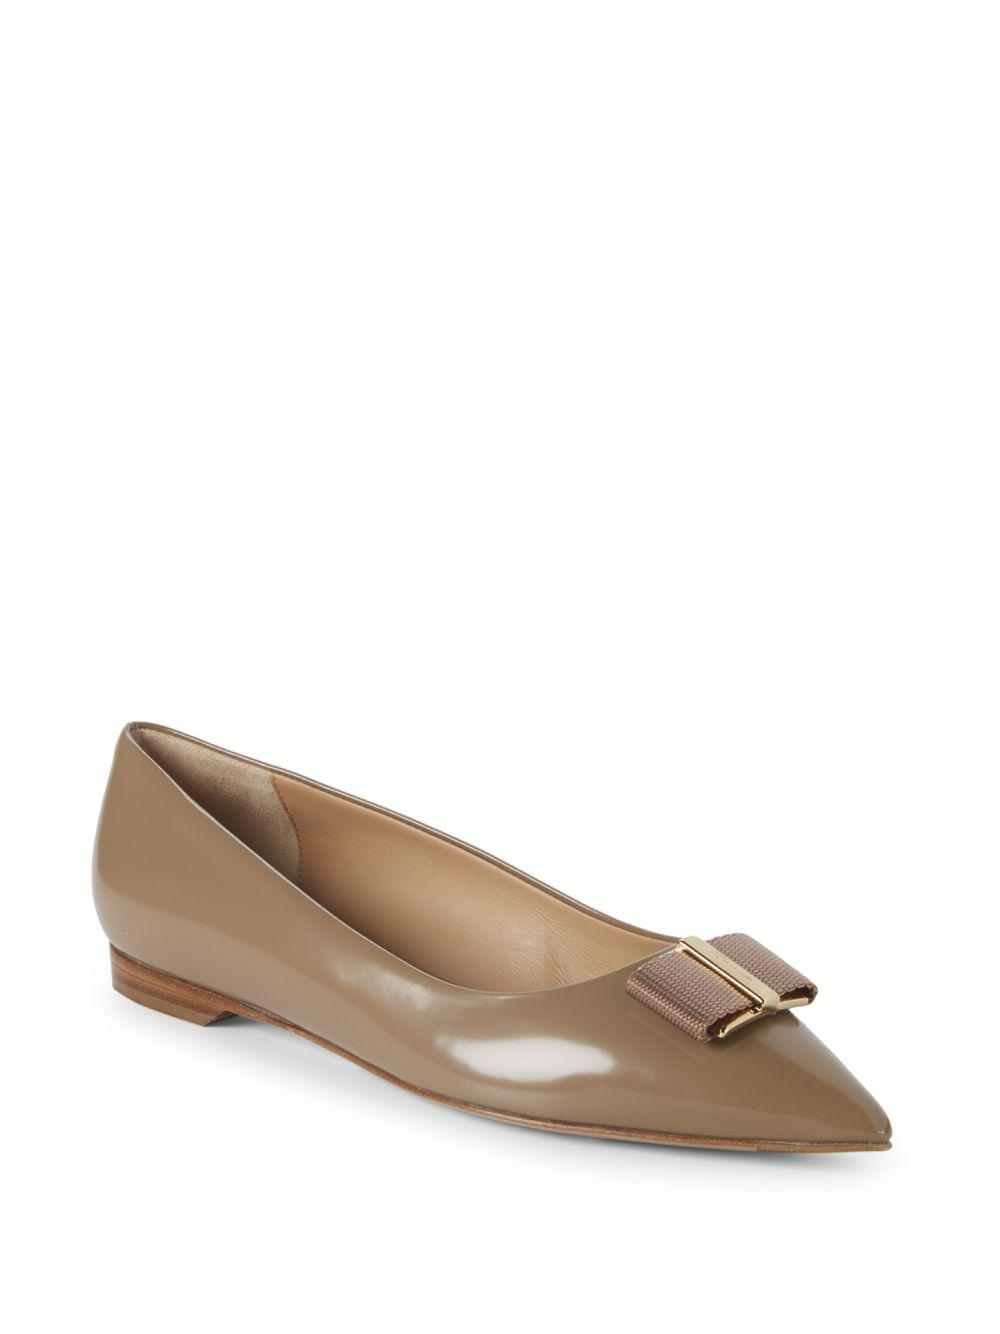 87842db6b98d Lyst - Ferragamo Point Toe Leather Ballet Flats in Natural